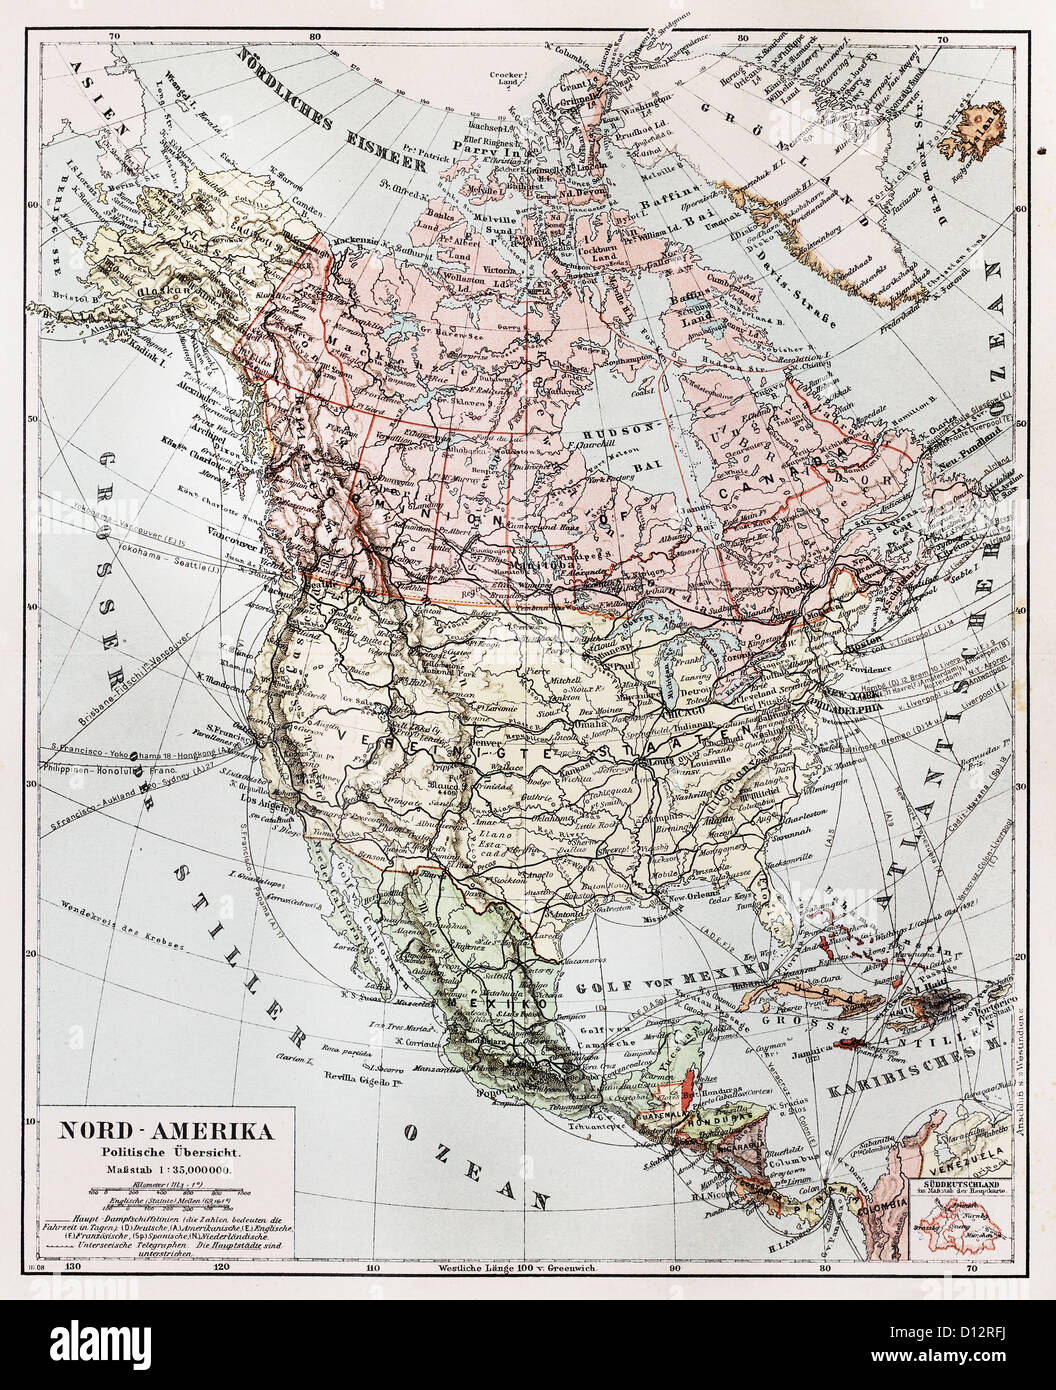 north america map stock photos north america map stock images